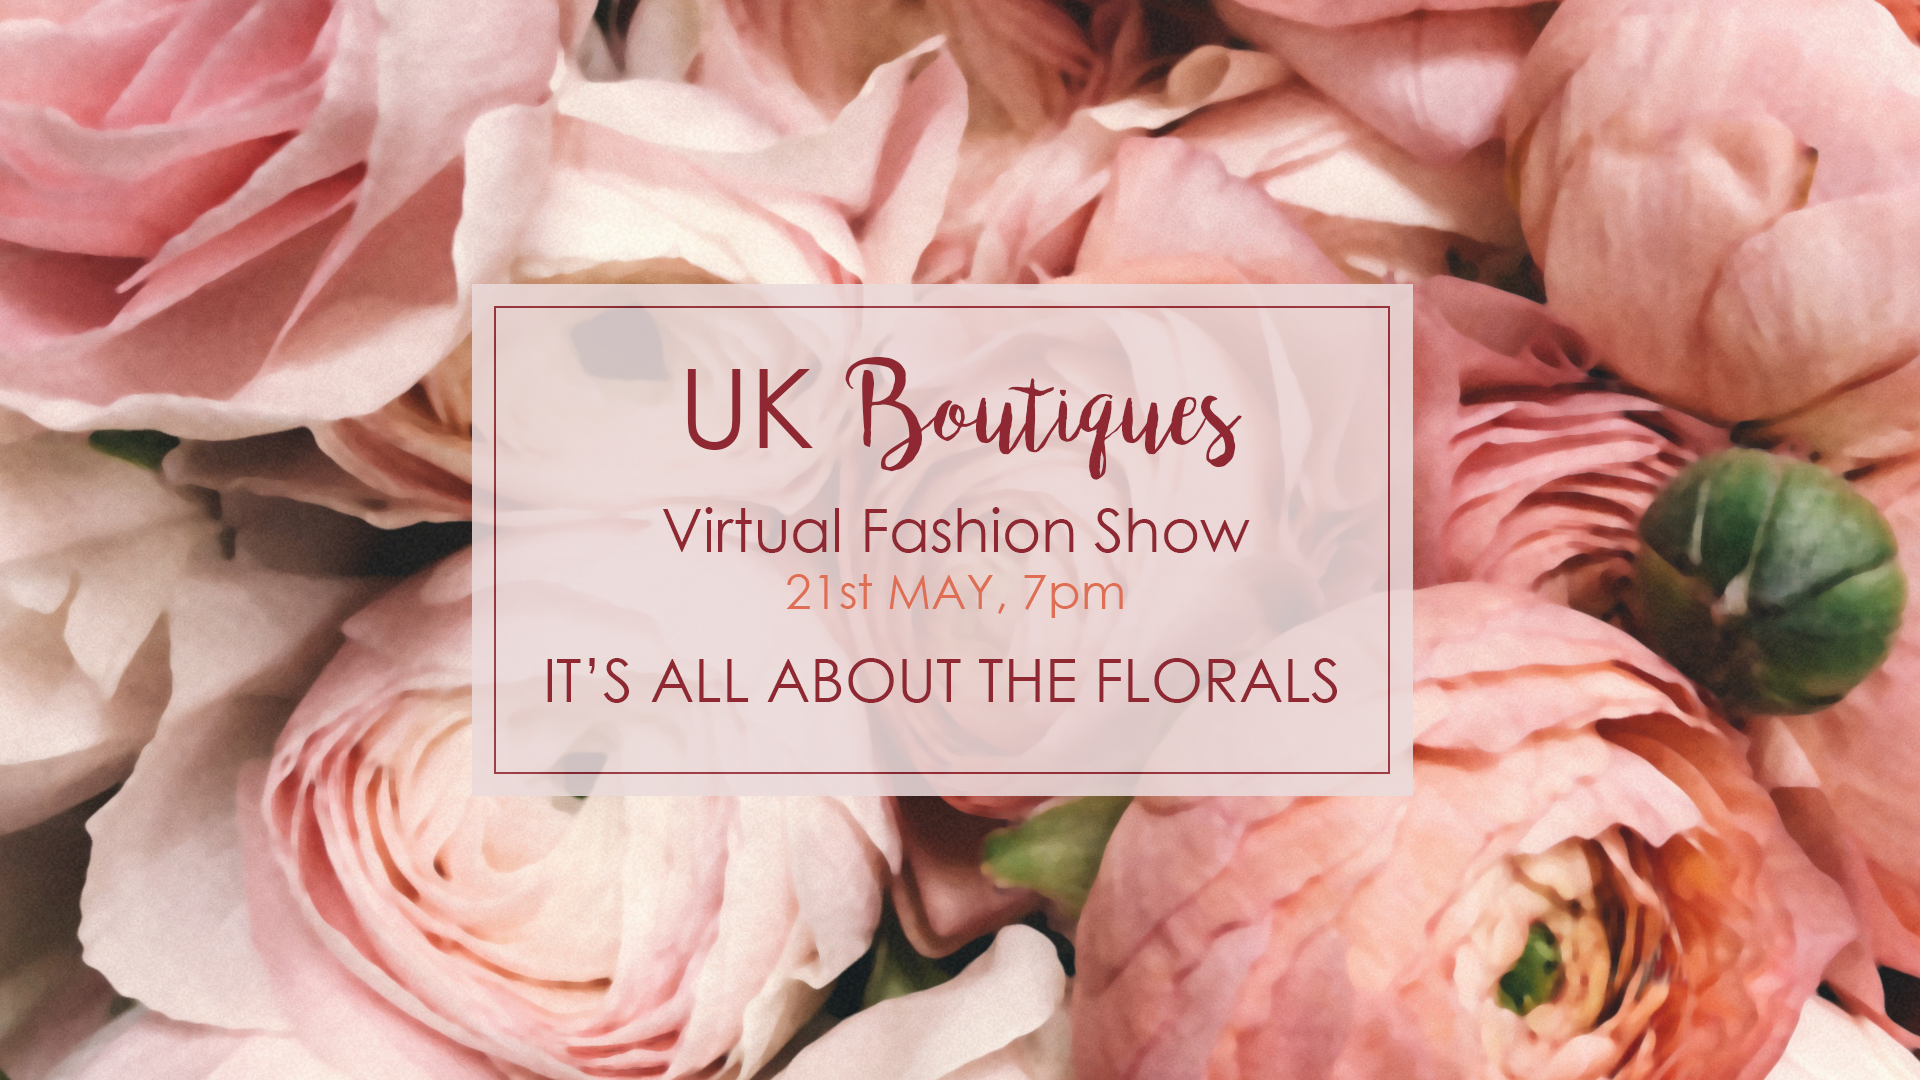 UK Boutiques Floral Virtual Fashion Show for RHS Chelsea Flower Show